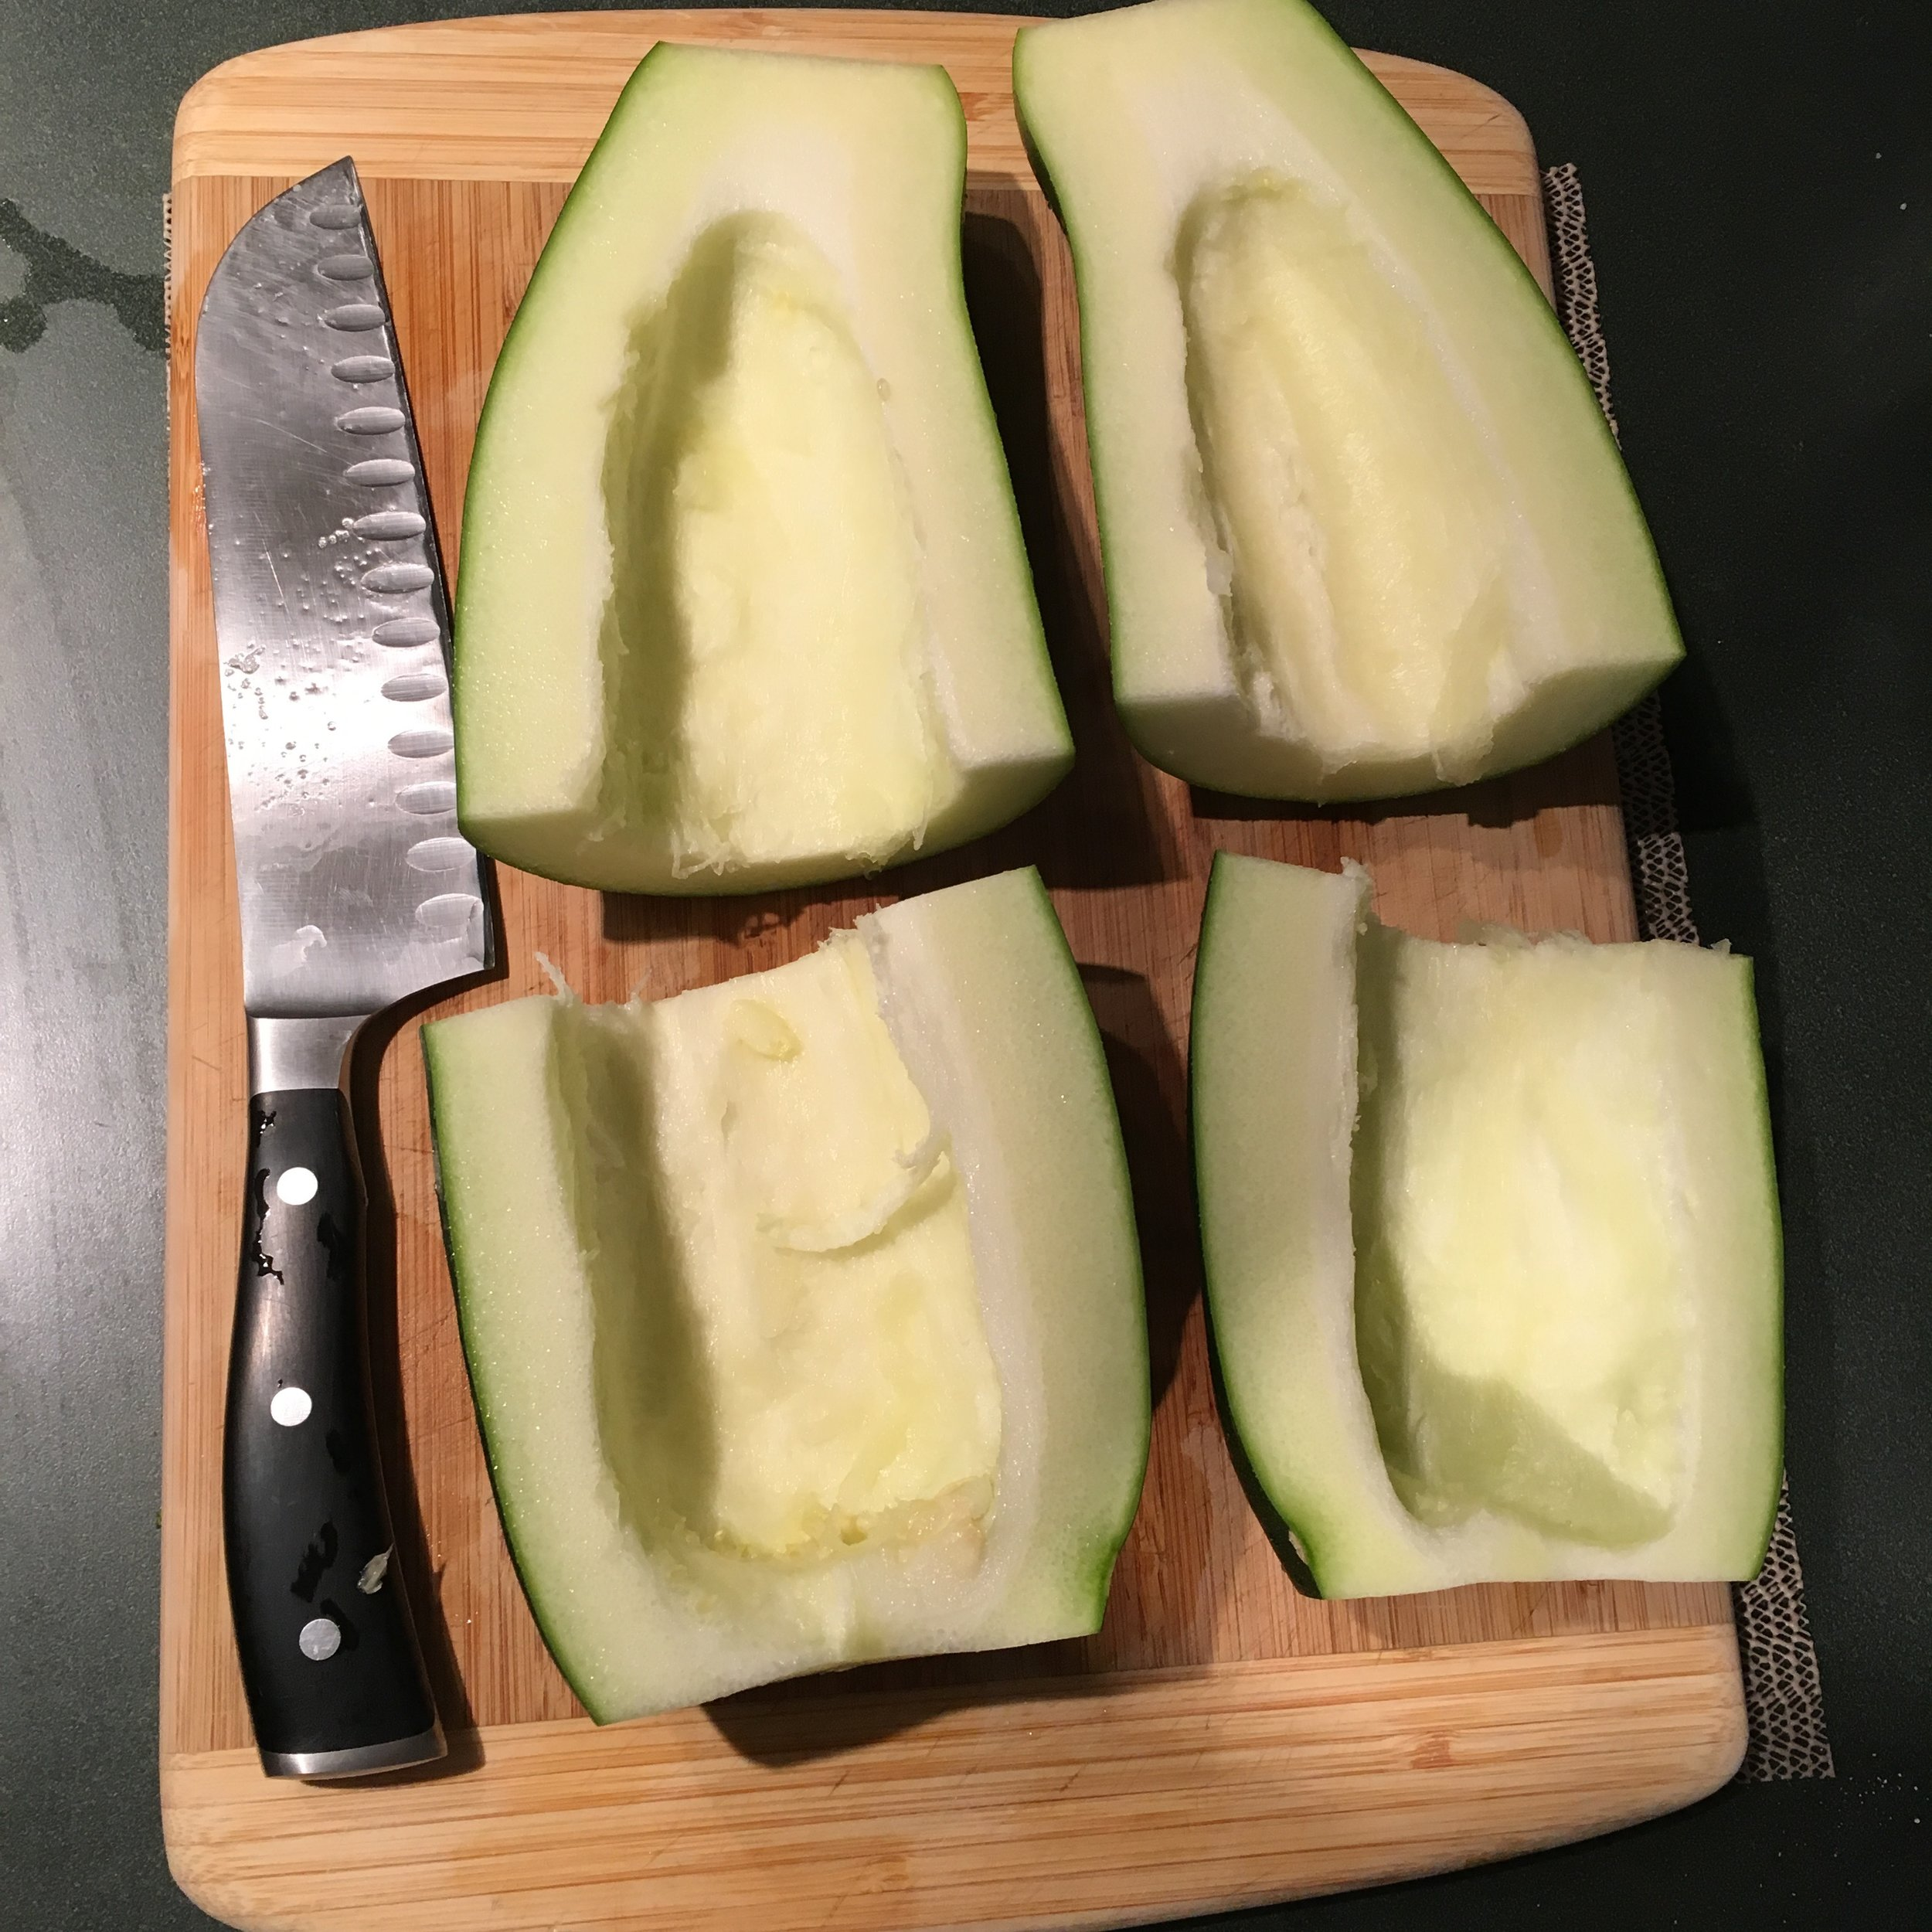 """In smaller zucchini, the seeds generally don't need to be removed, but that's a 7"""" blad santoku knife pictured, so I definitely removed the seeds on this guy!"""